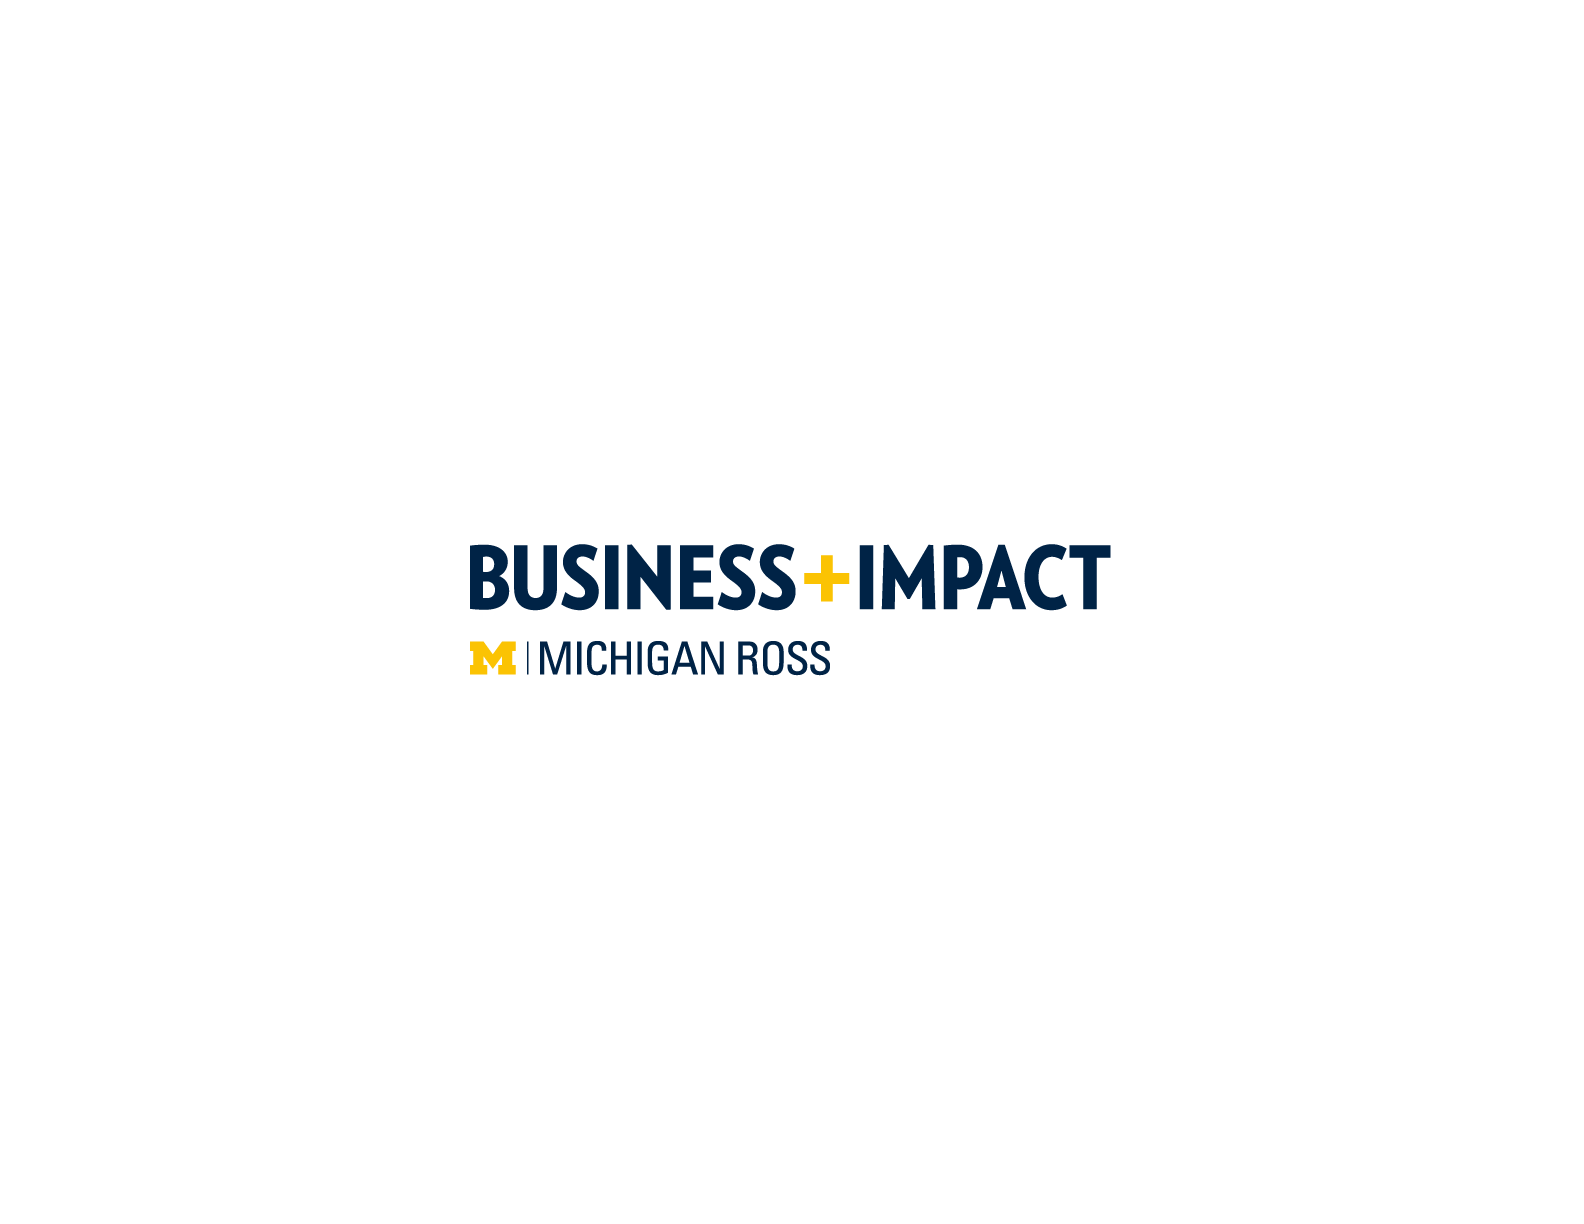 Home of Business+Impact at Michigan Ross - University of